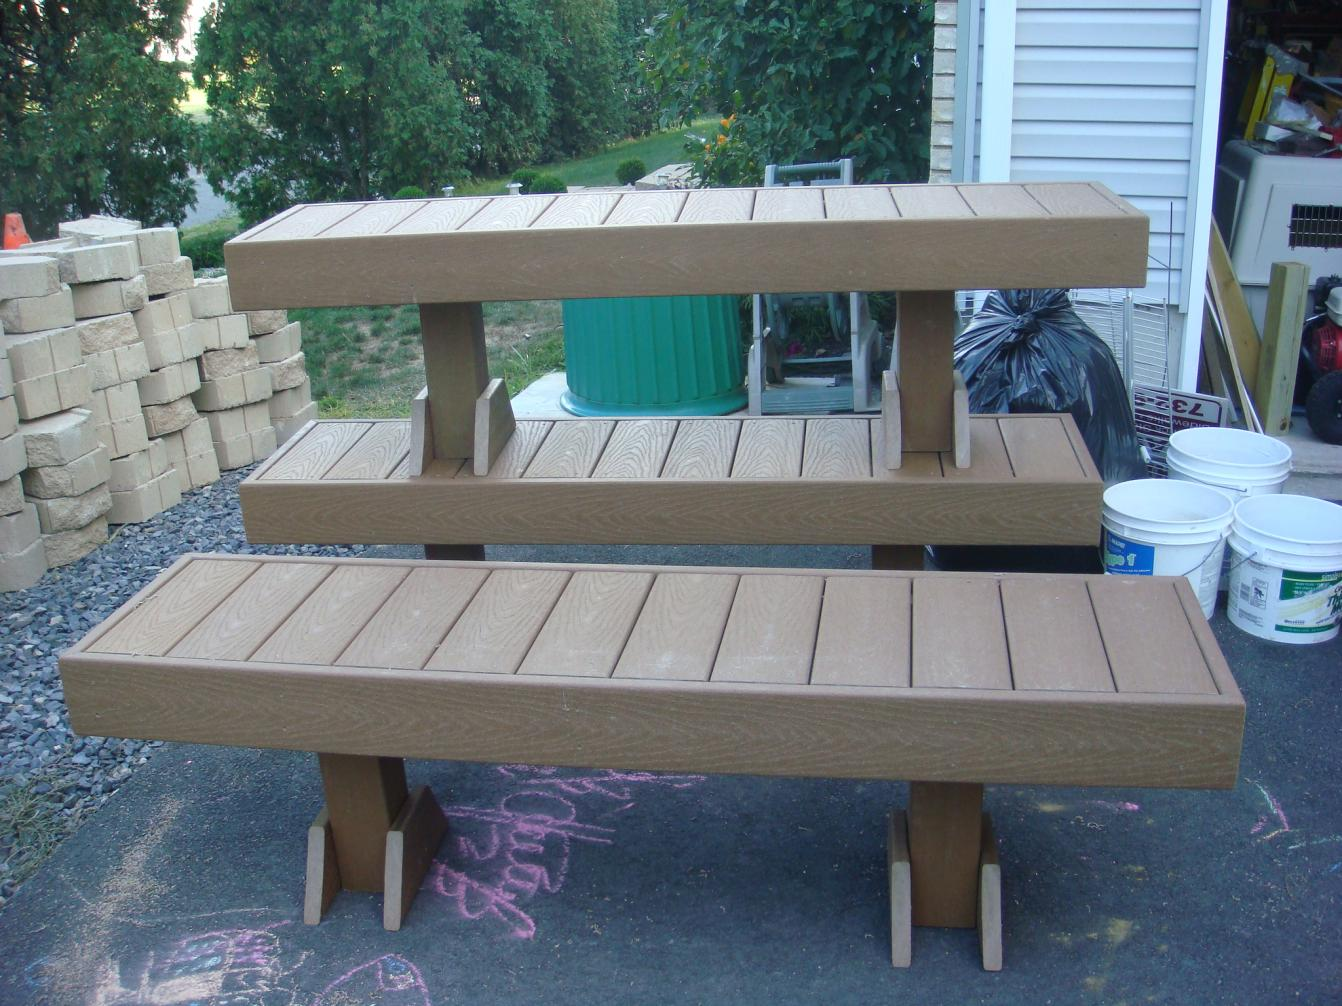 Standard height and width for bench on a deck-306.jpg